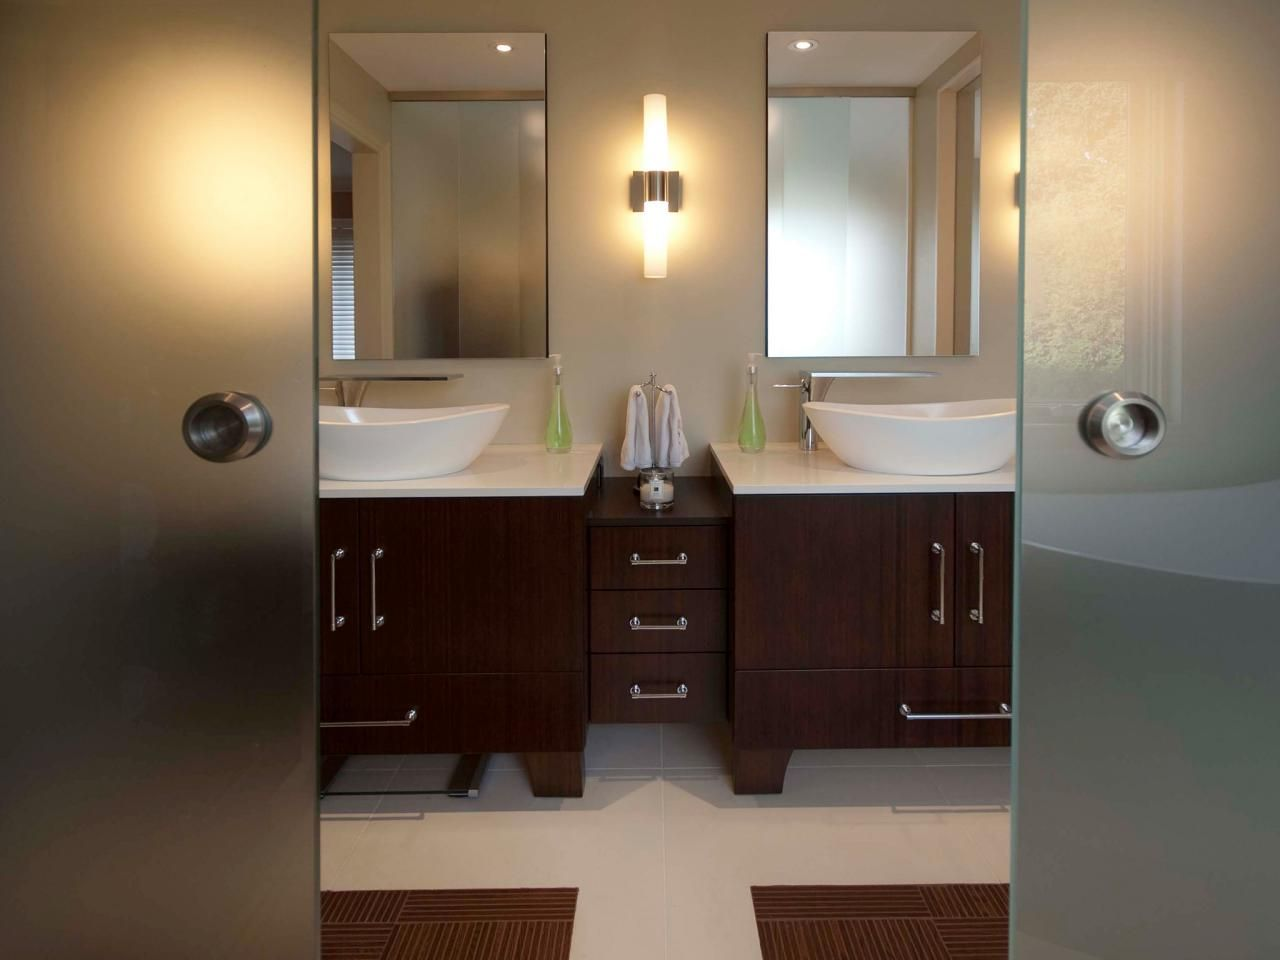 This elegant, contemporary bathroom has his-and-hers vanities and matching medicine cabinets. The frosted, sliding glass doors allow daylight to filter through the entire space.